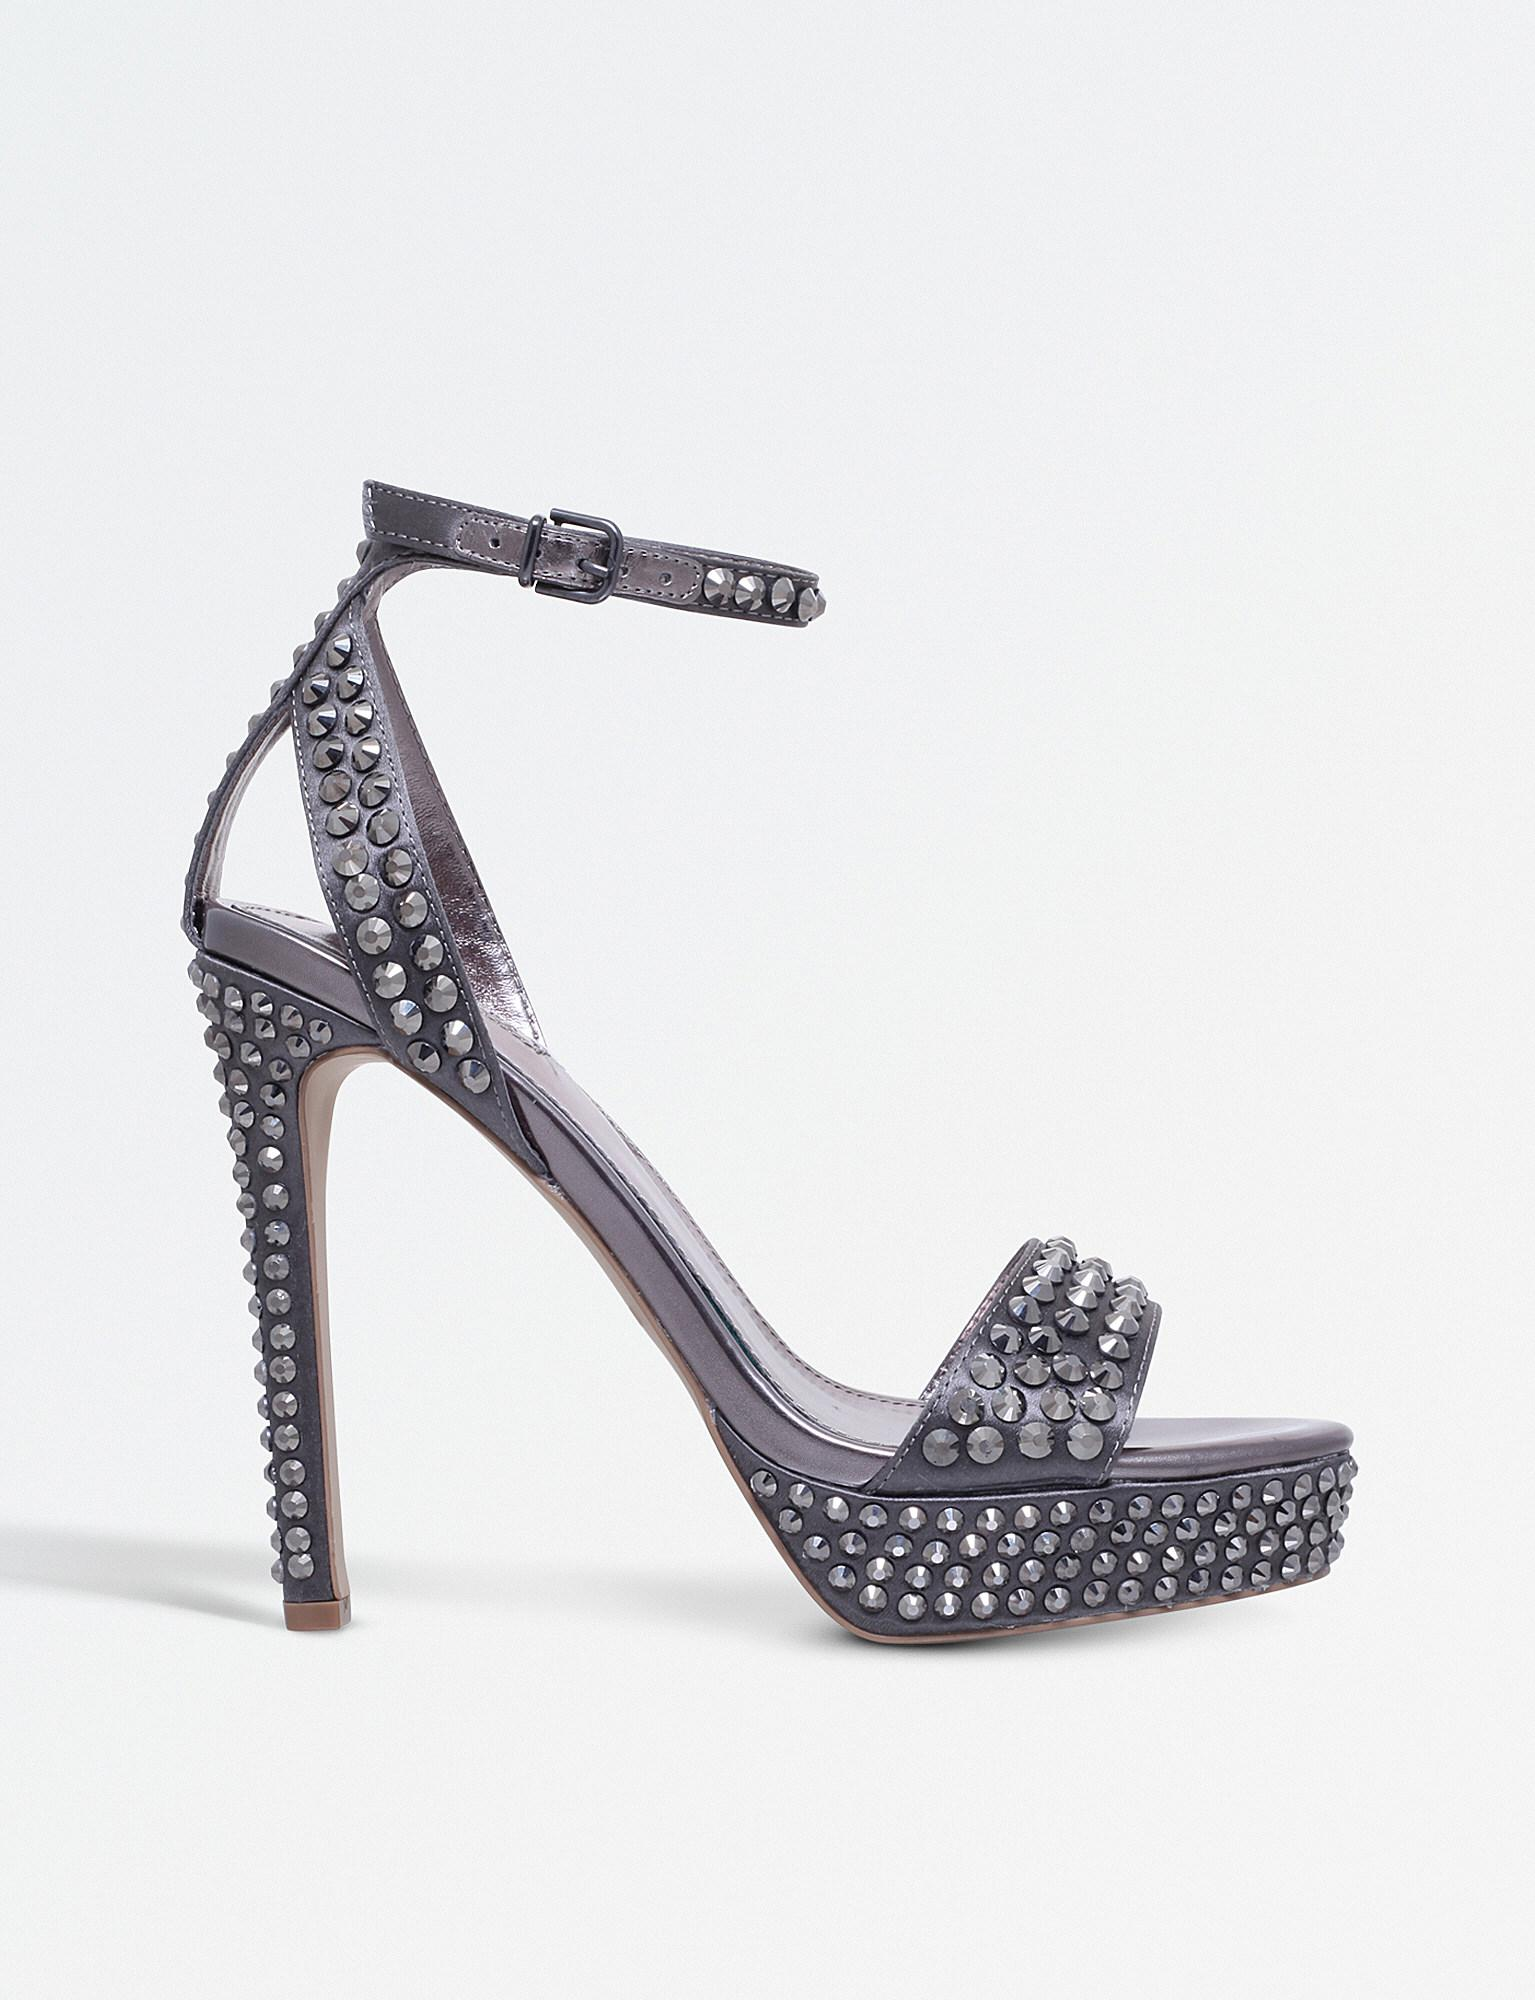 48d3fd9dea2 Carvela Kurt Geiger Genna Satin Studded Platform Sandals in Gray - Lyst